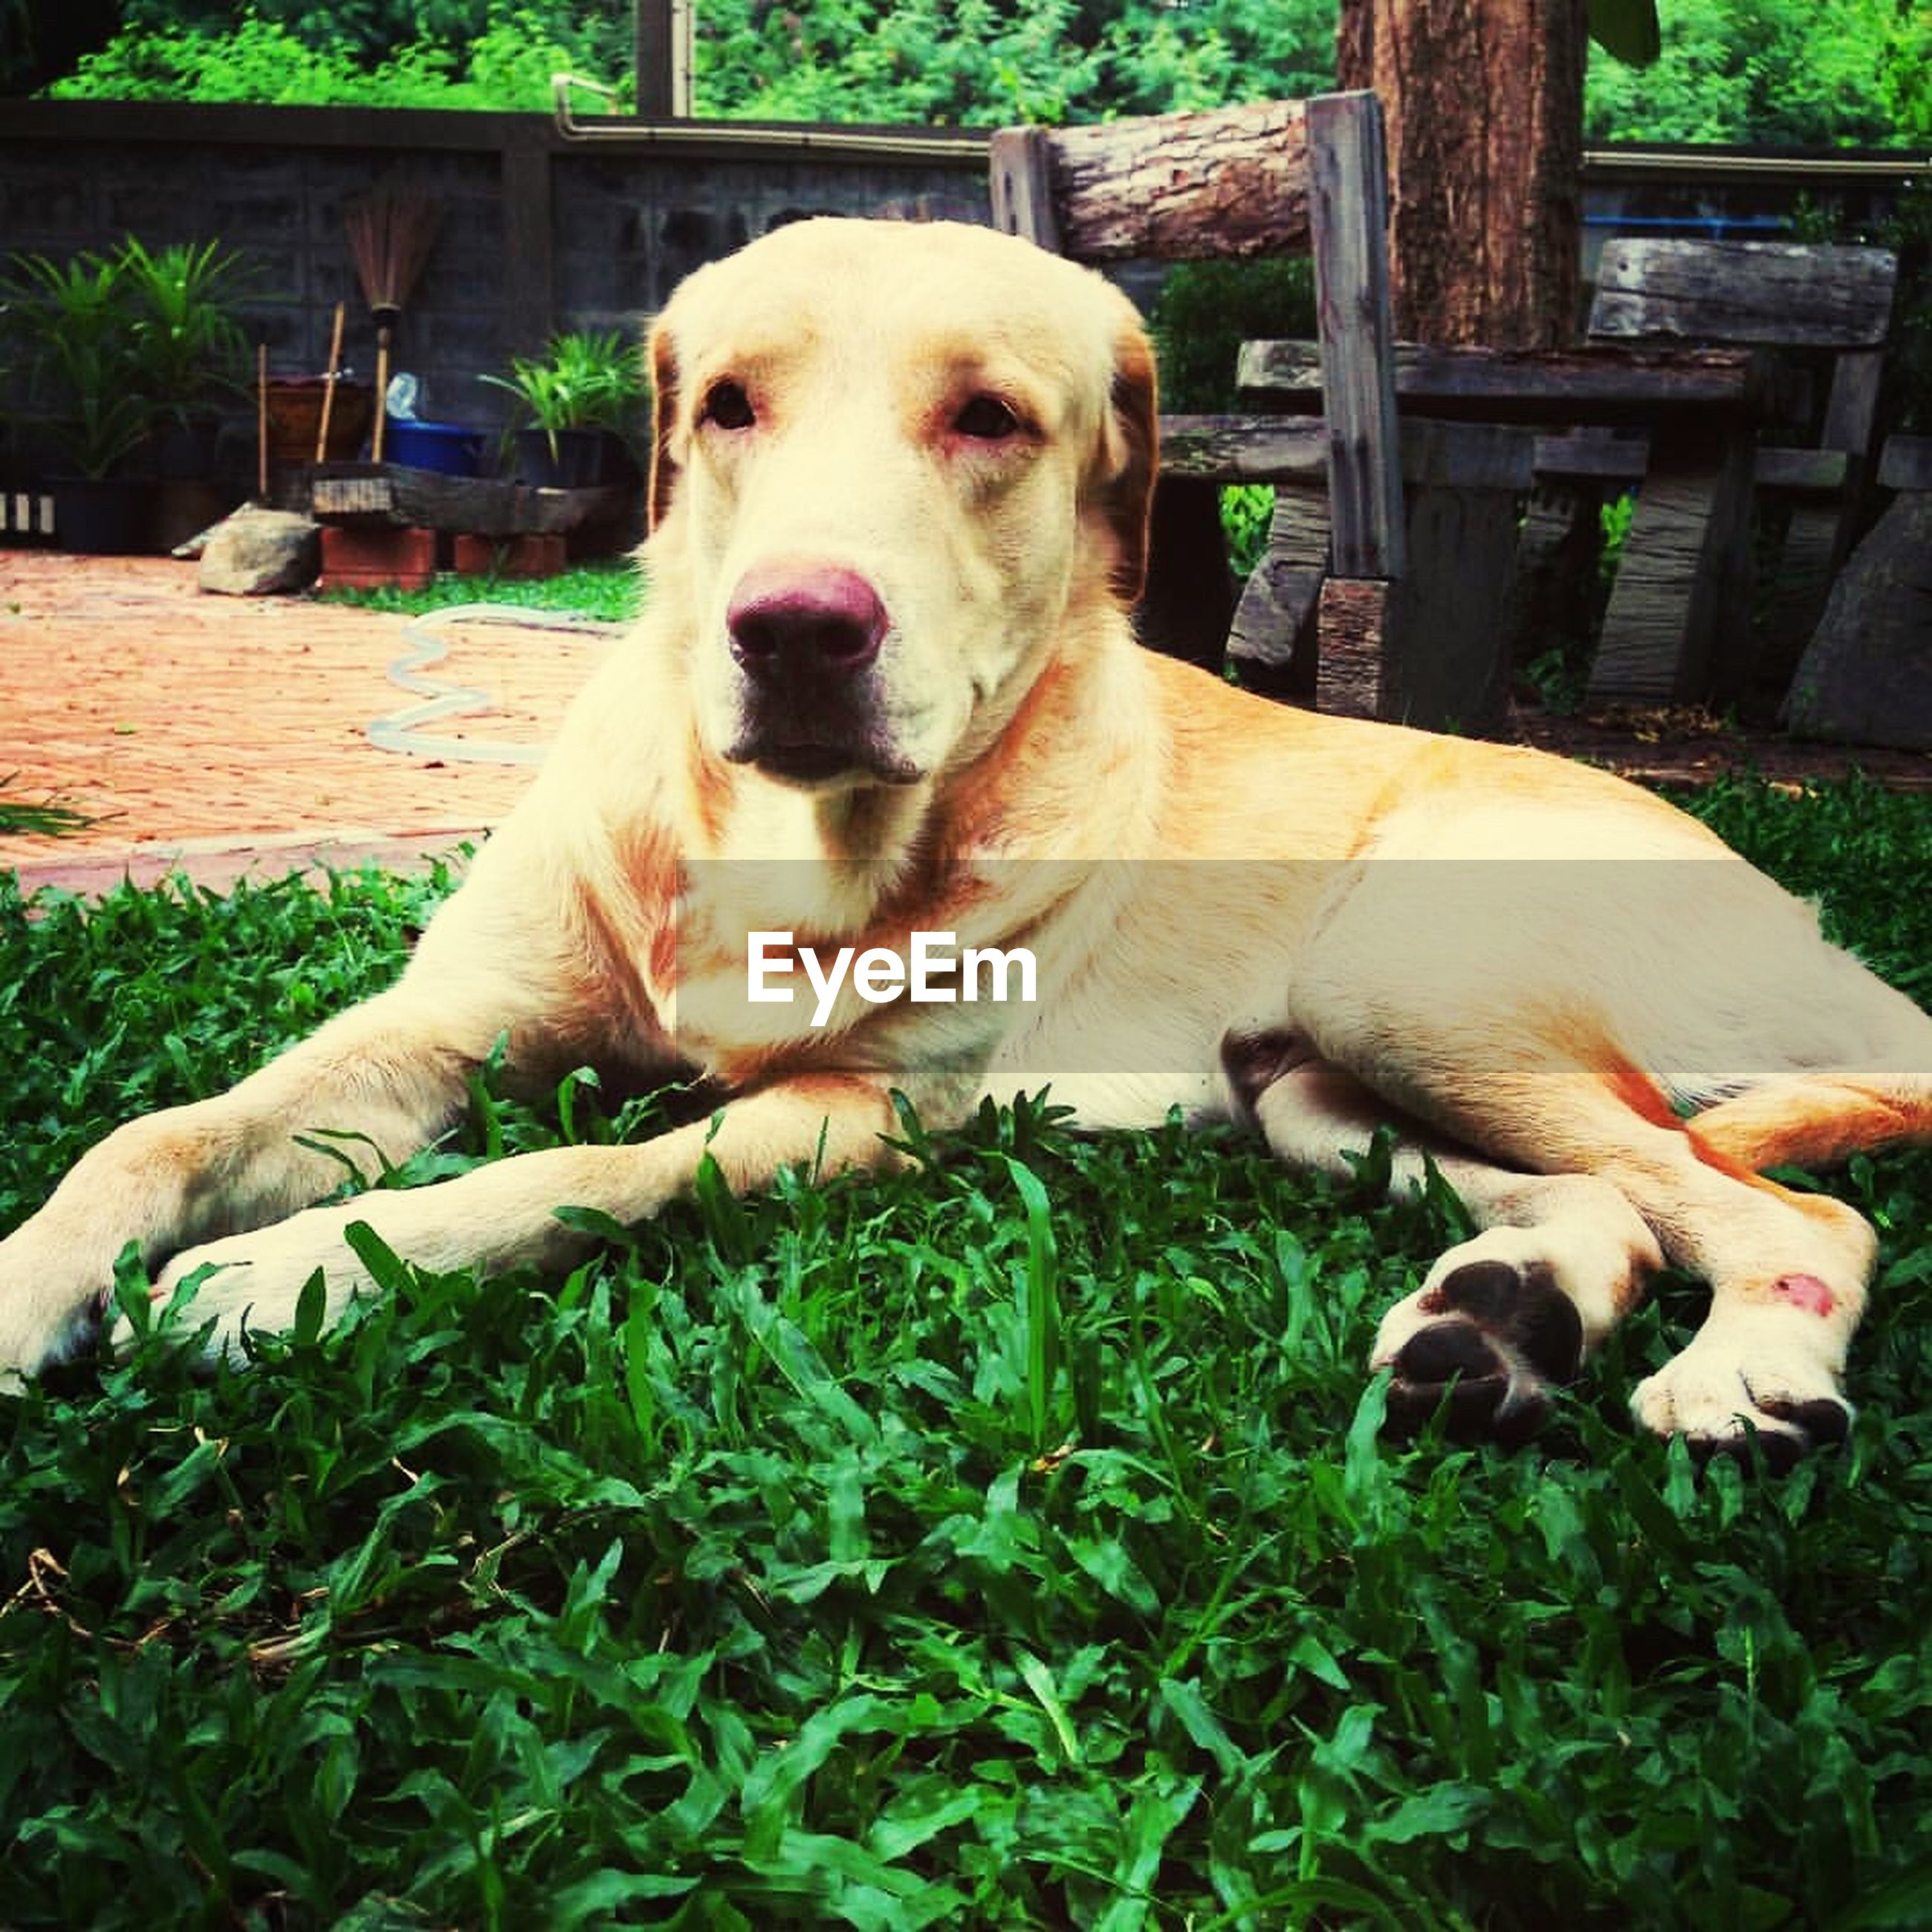 dog, pets, mammal, one animal, animal themes, domestic animals, relaxation, grass, sitting, looking at camera, outdoors, day, portrait, no people, close-up, nature